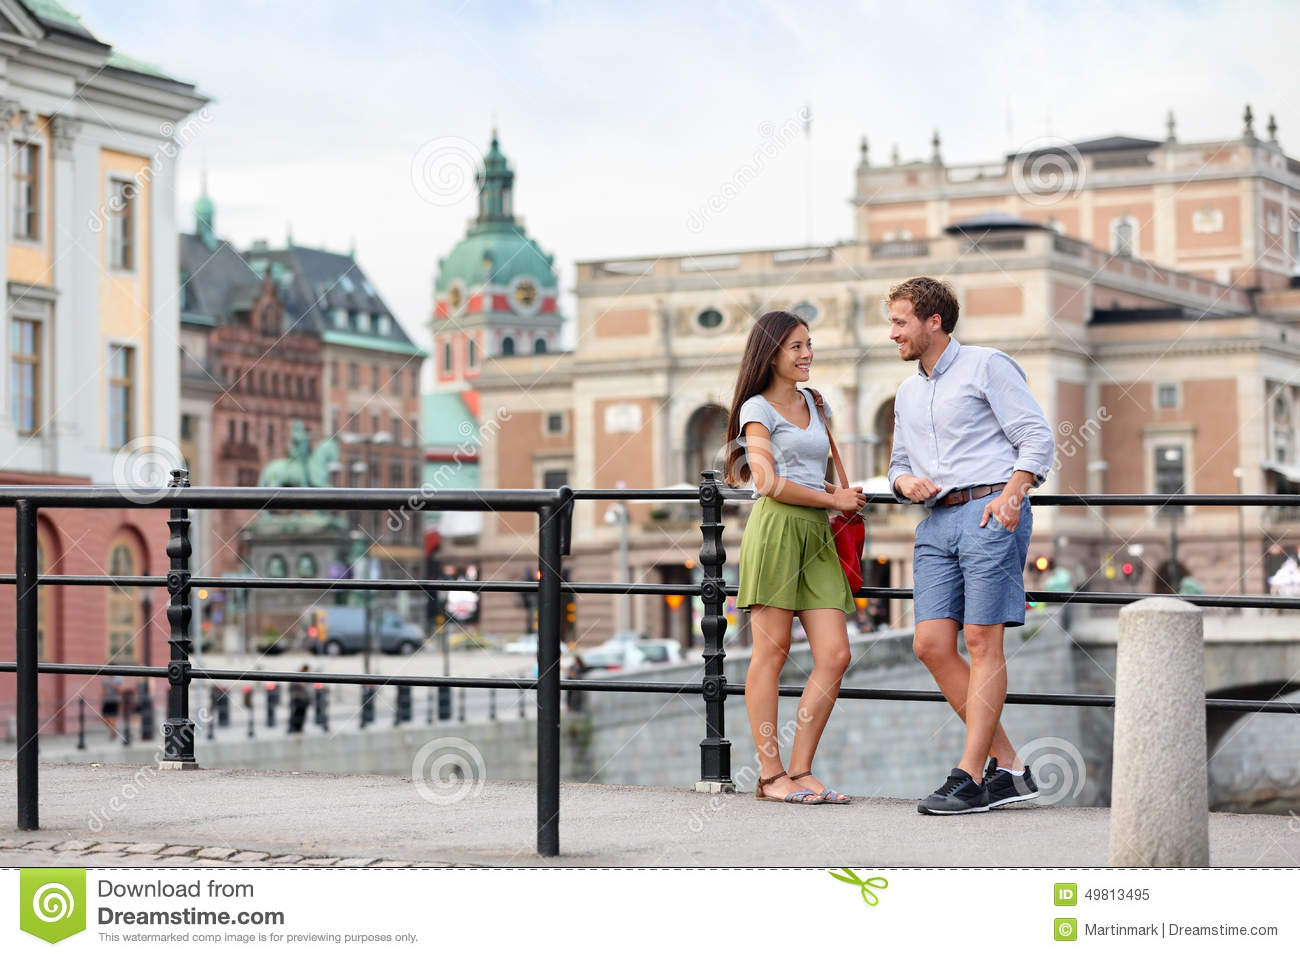 Urban people lifestyle - young couple in Stockholm